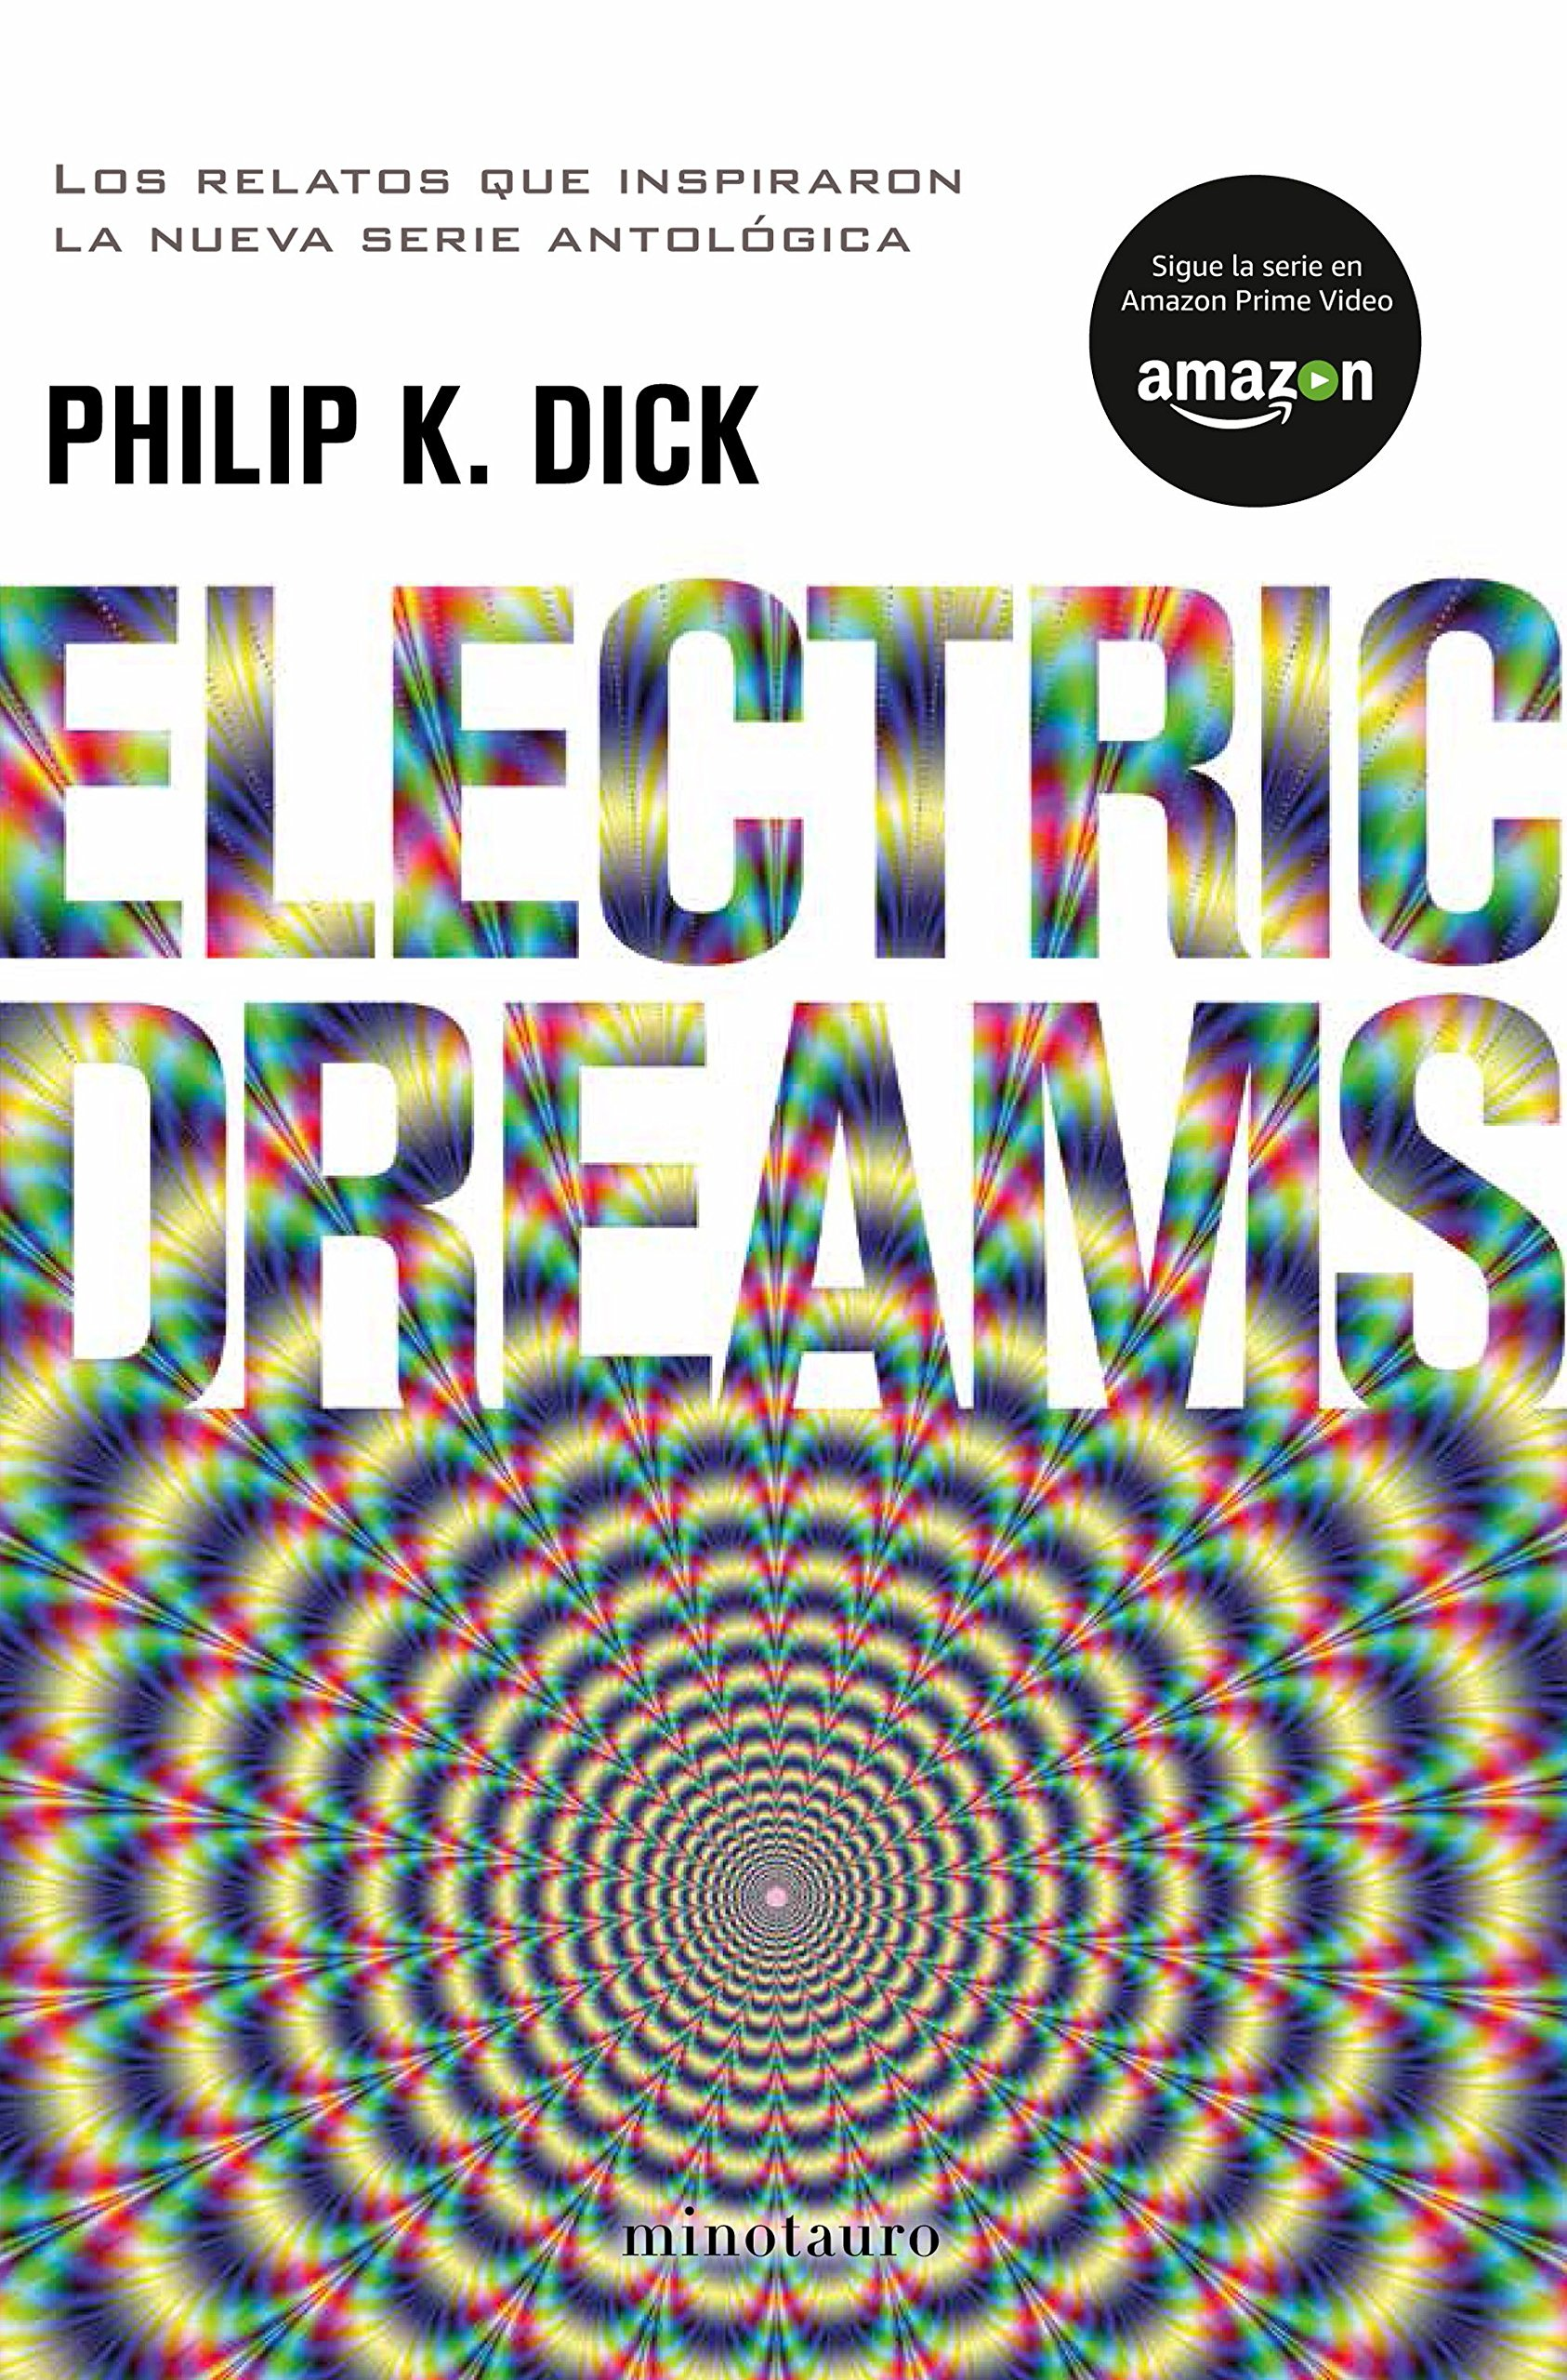 Electric Dreams (Biblioteca P. K. Dick): Amazon.es: Philip K. Dick, Manuel Mata Álvarez-Santullano, Eduardo G. Murillo: Libros